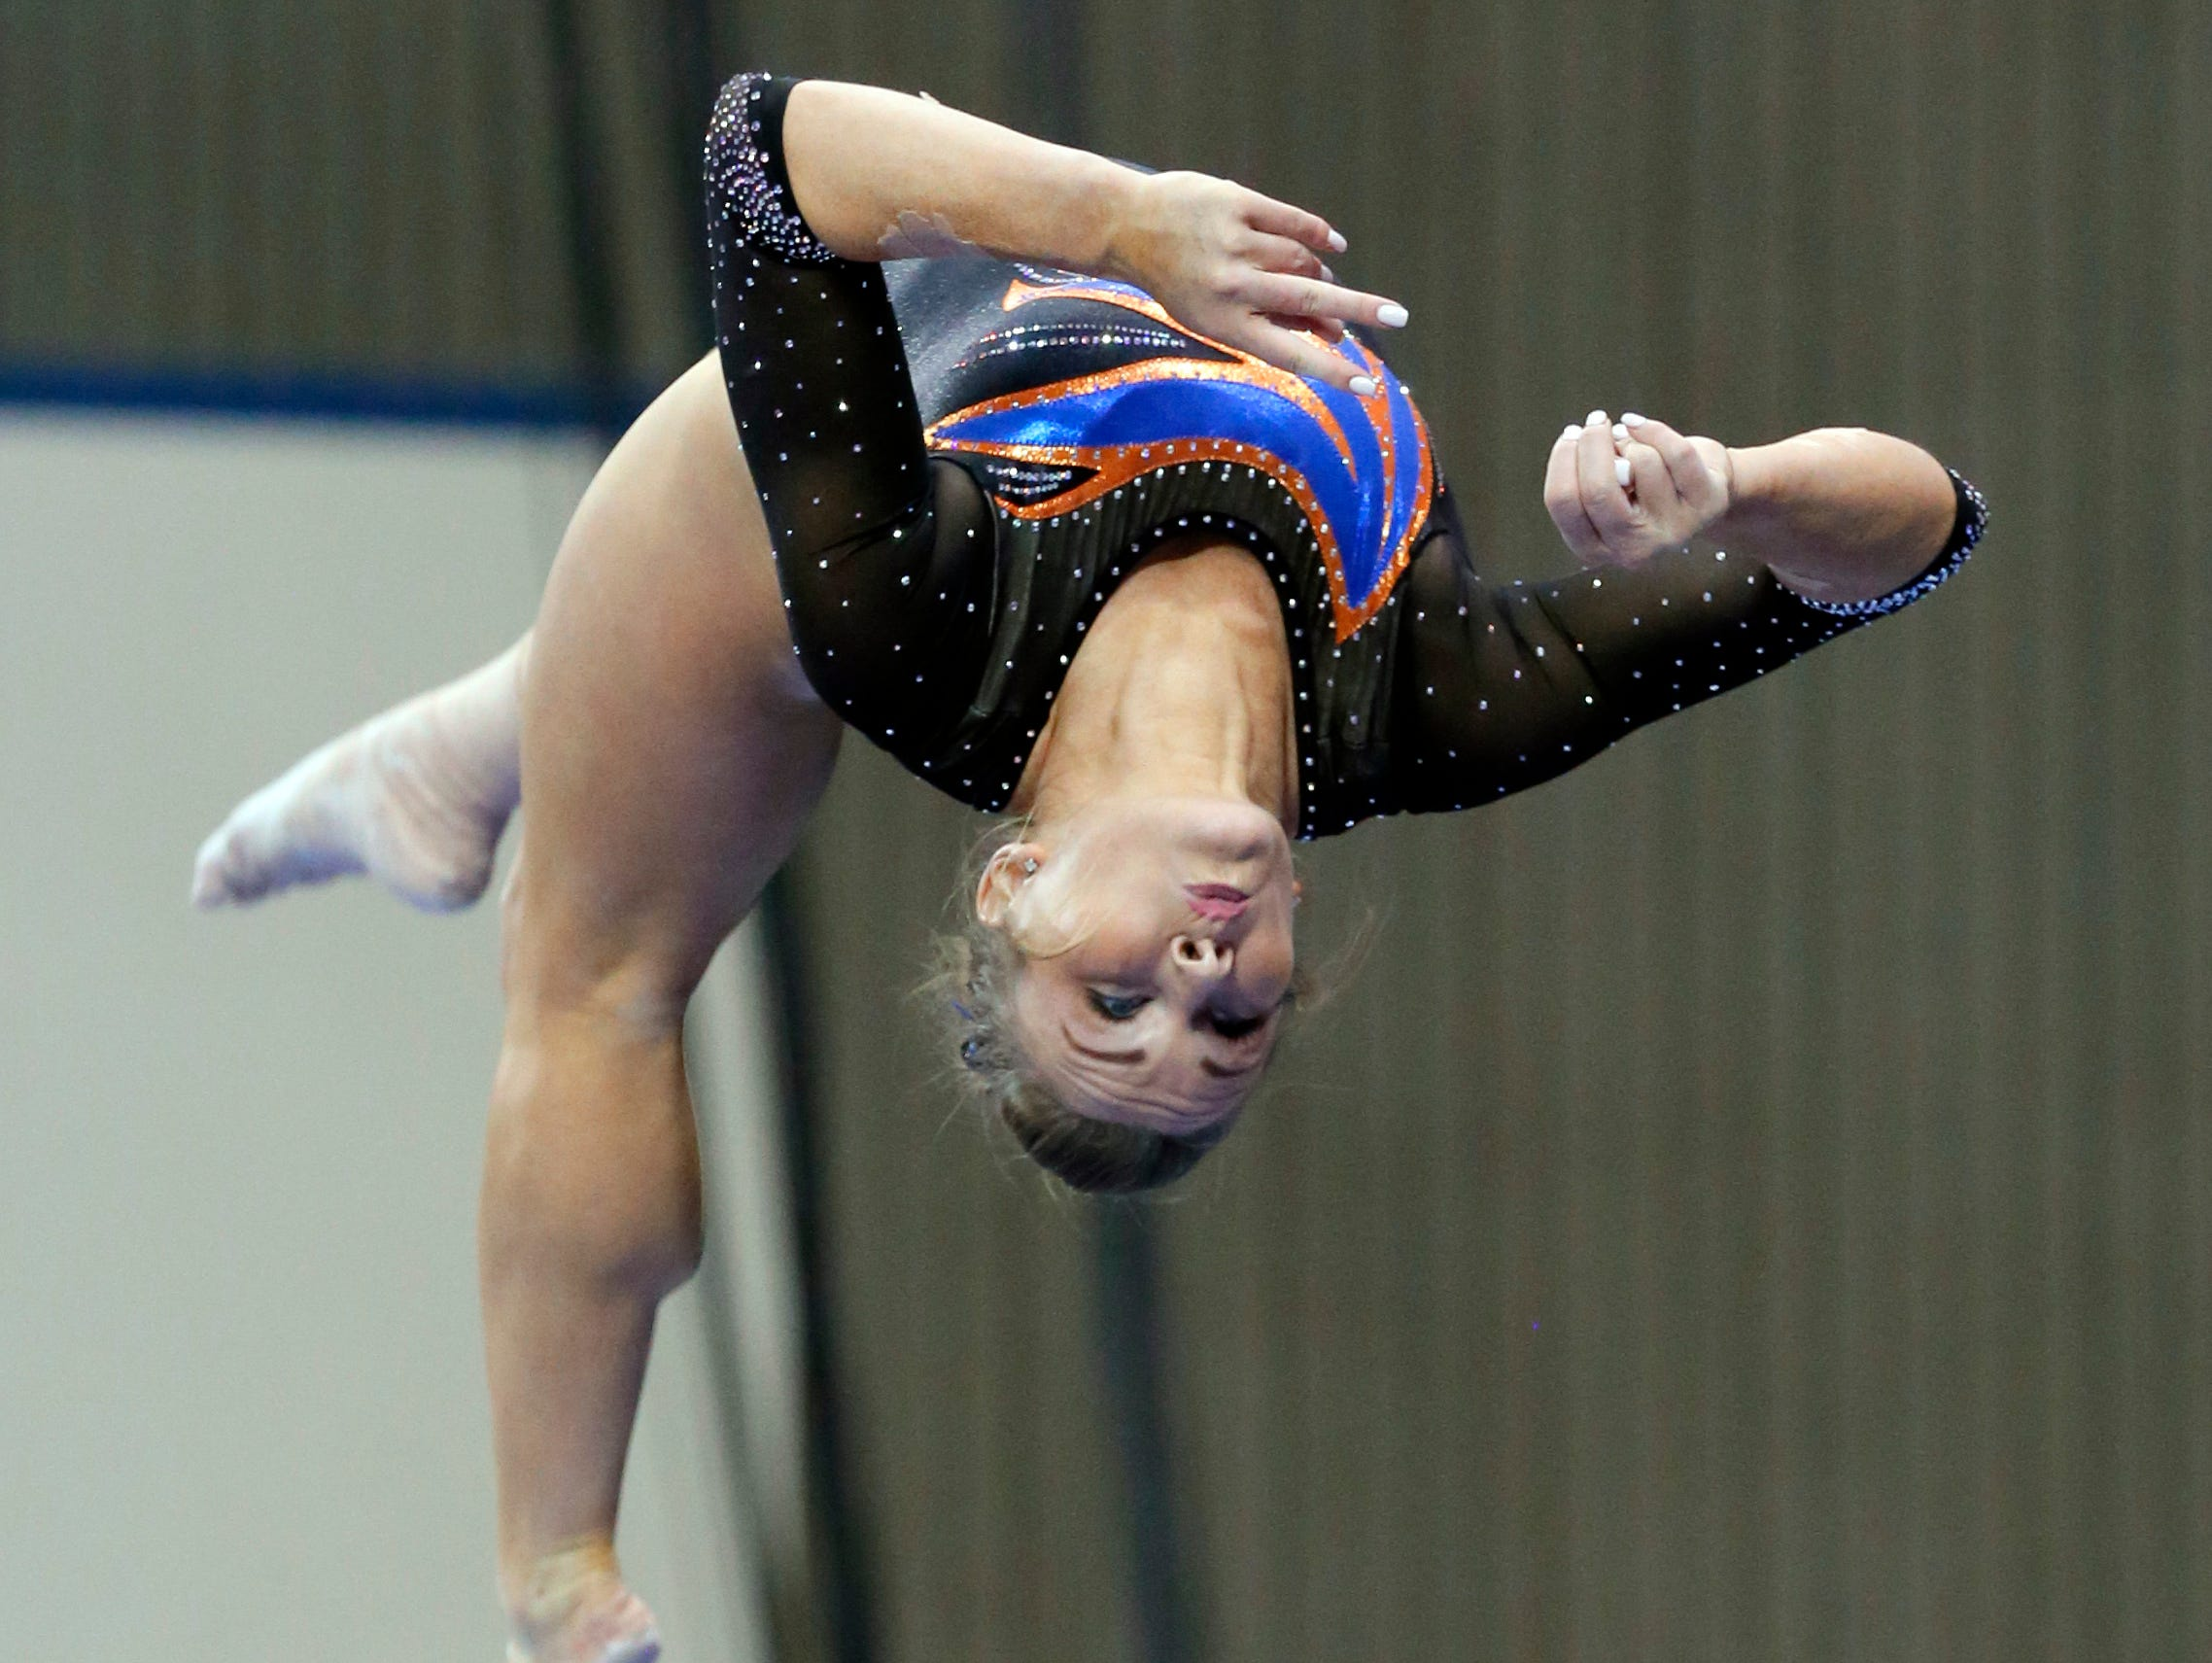 Florida's Bridget Sloan competes on the balance beam during the NCAA women's gymnastics championships,Friday, April 15, 2016, in Fort Worth, Texas.